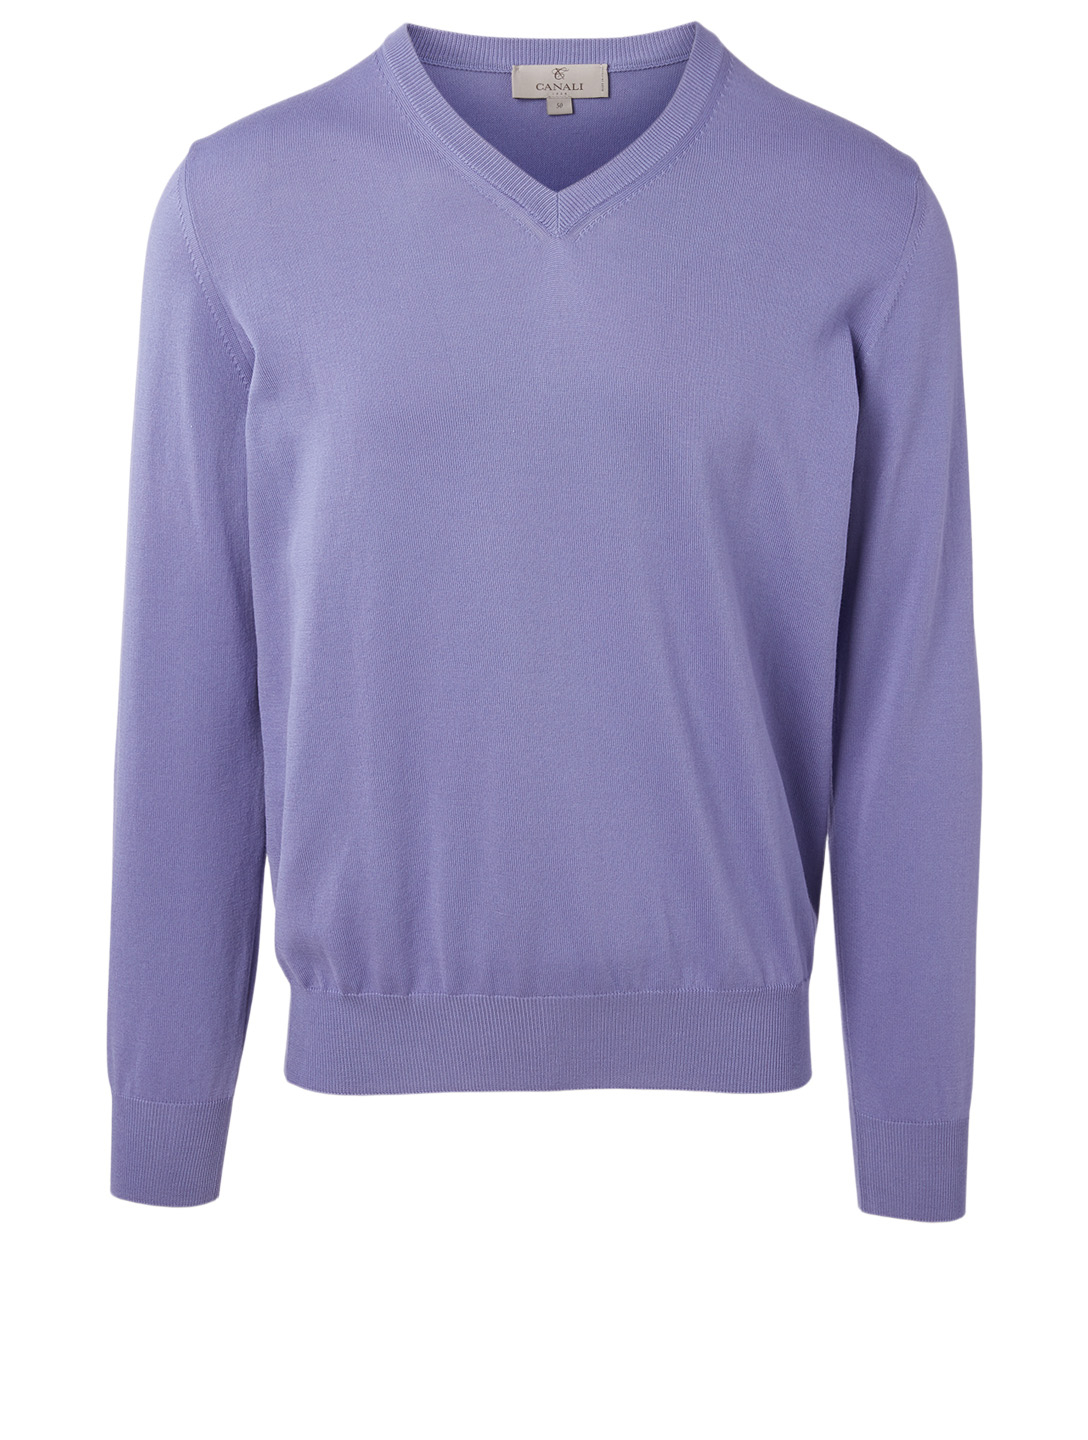 CANALI Cotton V-Neck Sweater Men's Purple